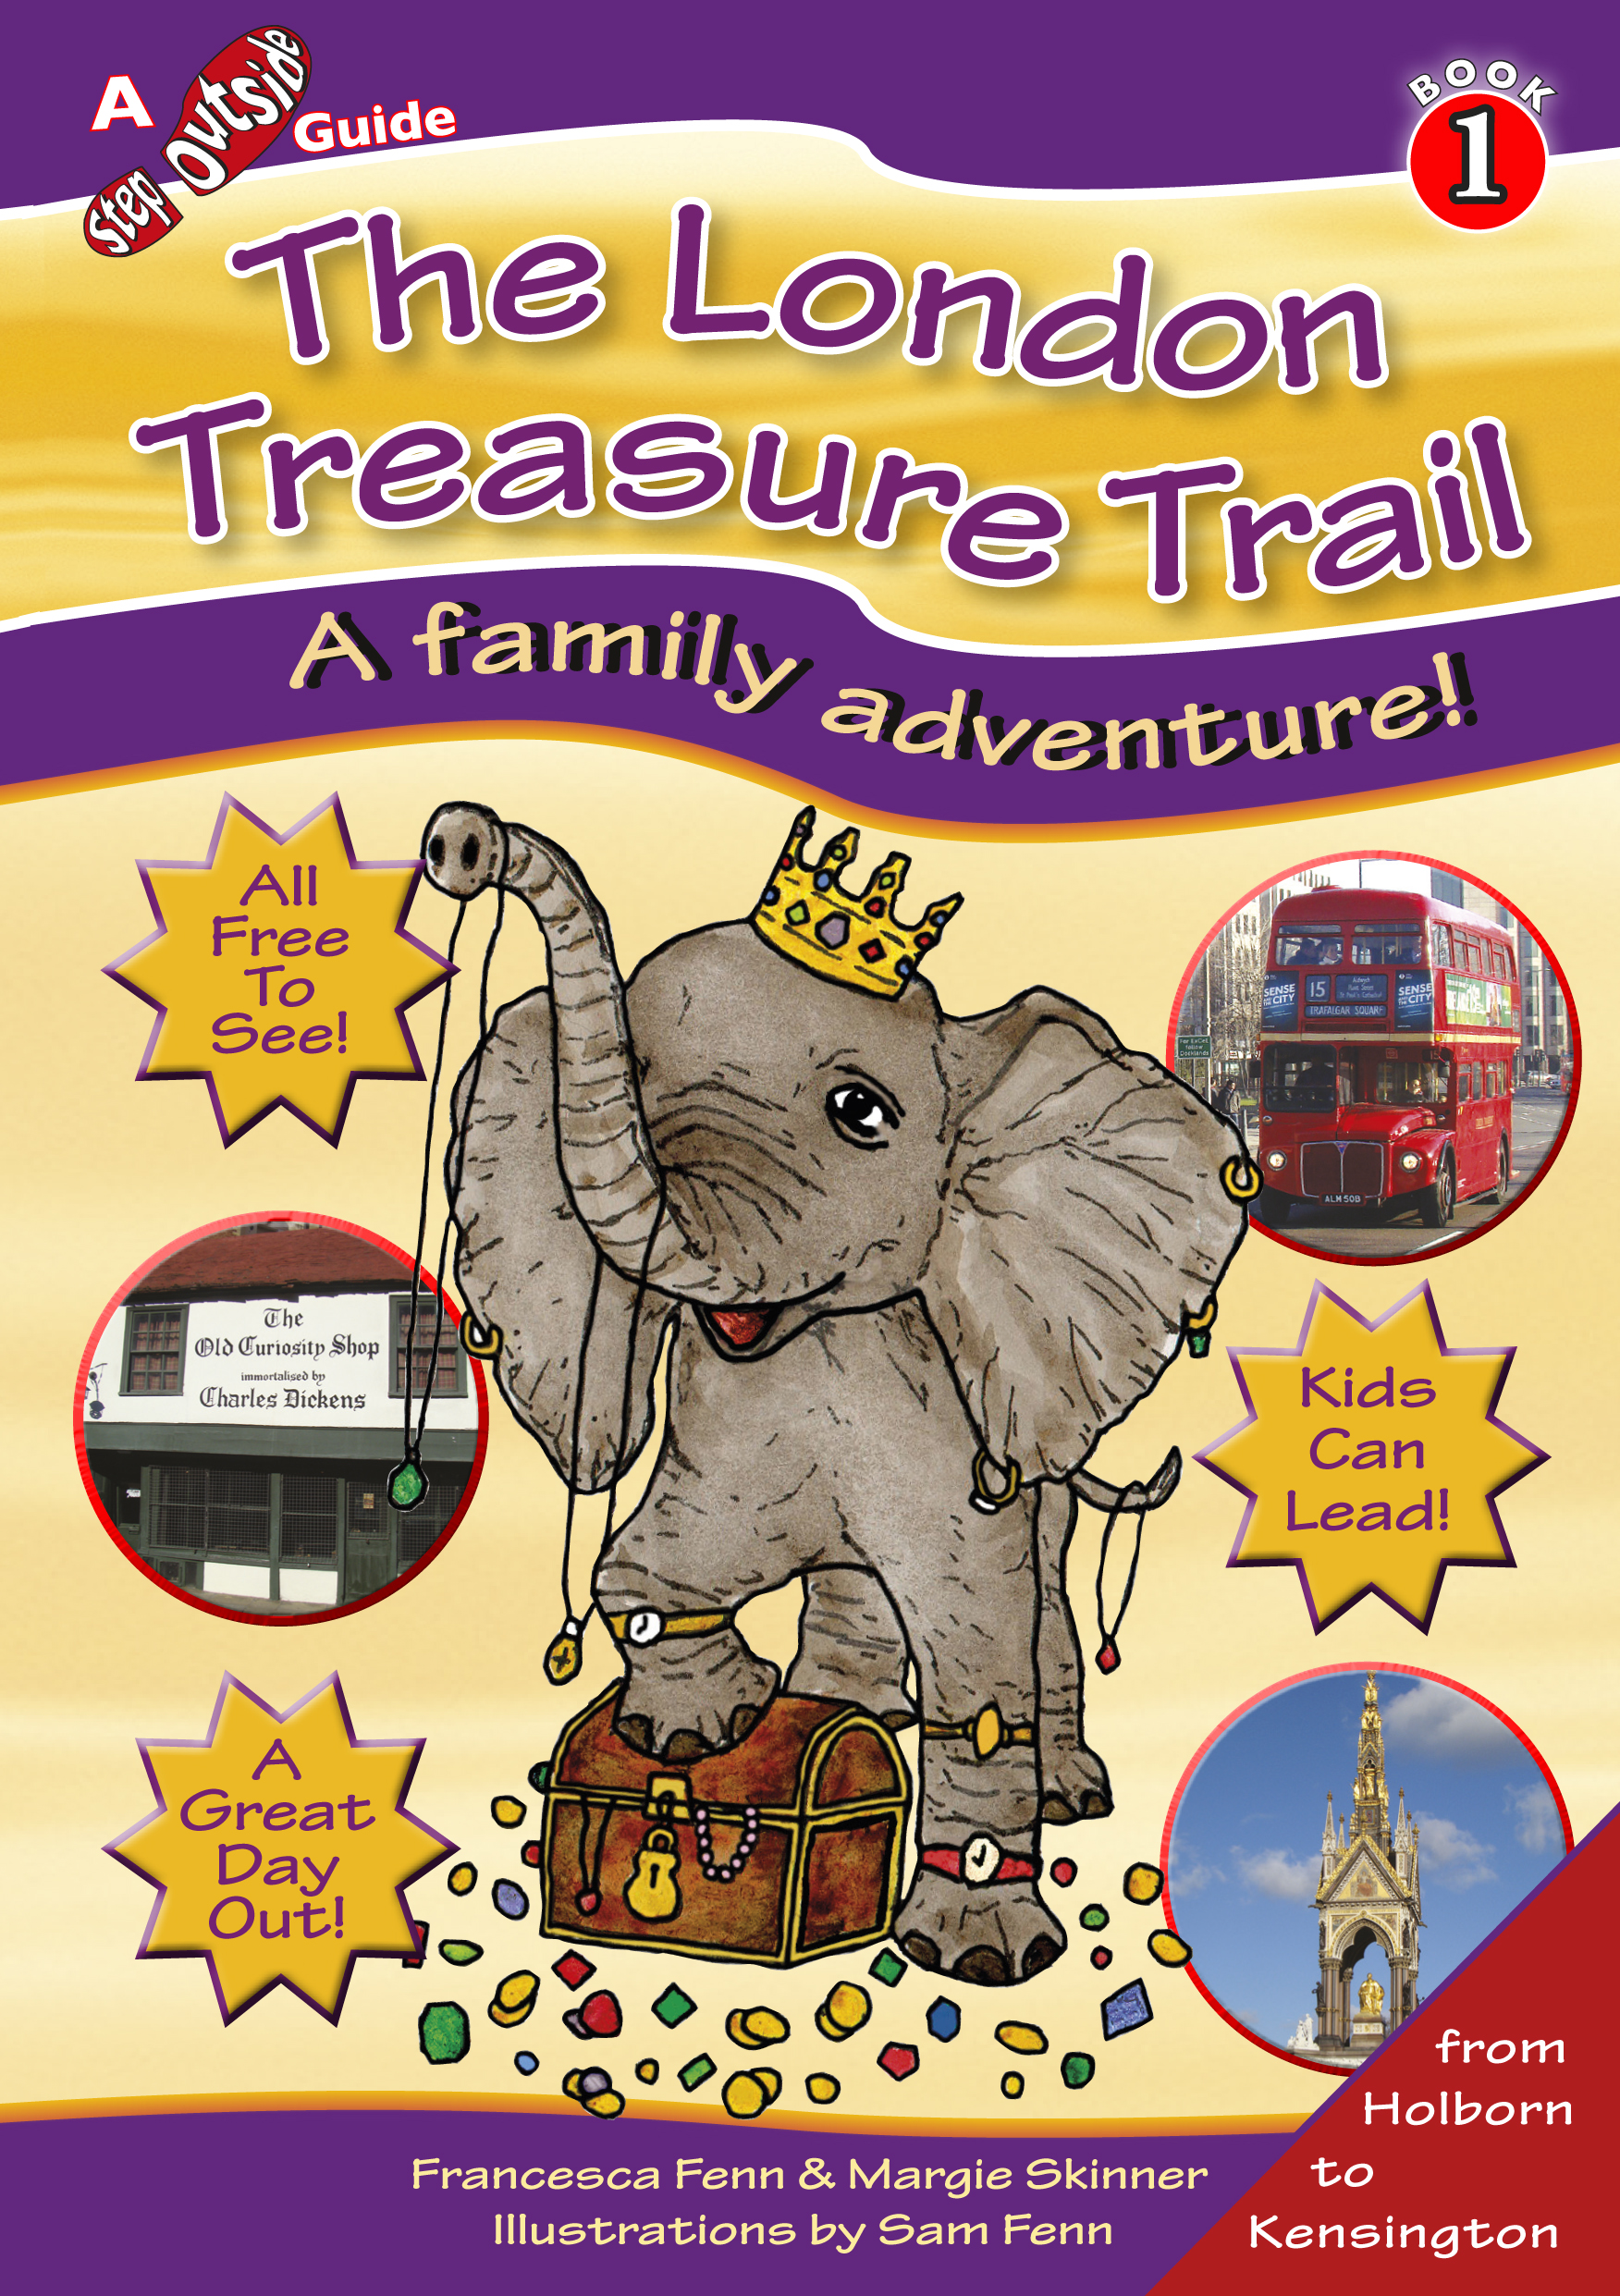 Step Outside Guide Down The London Treasure Trail